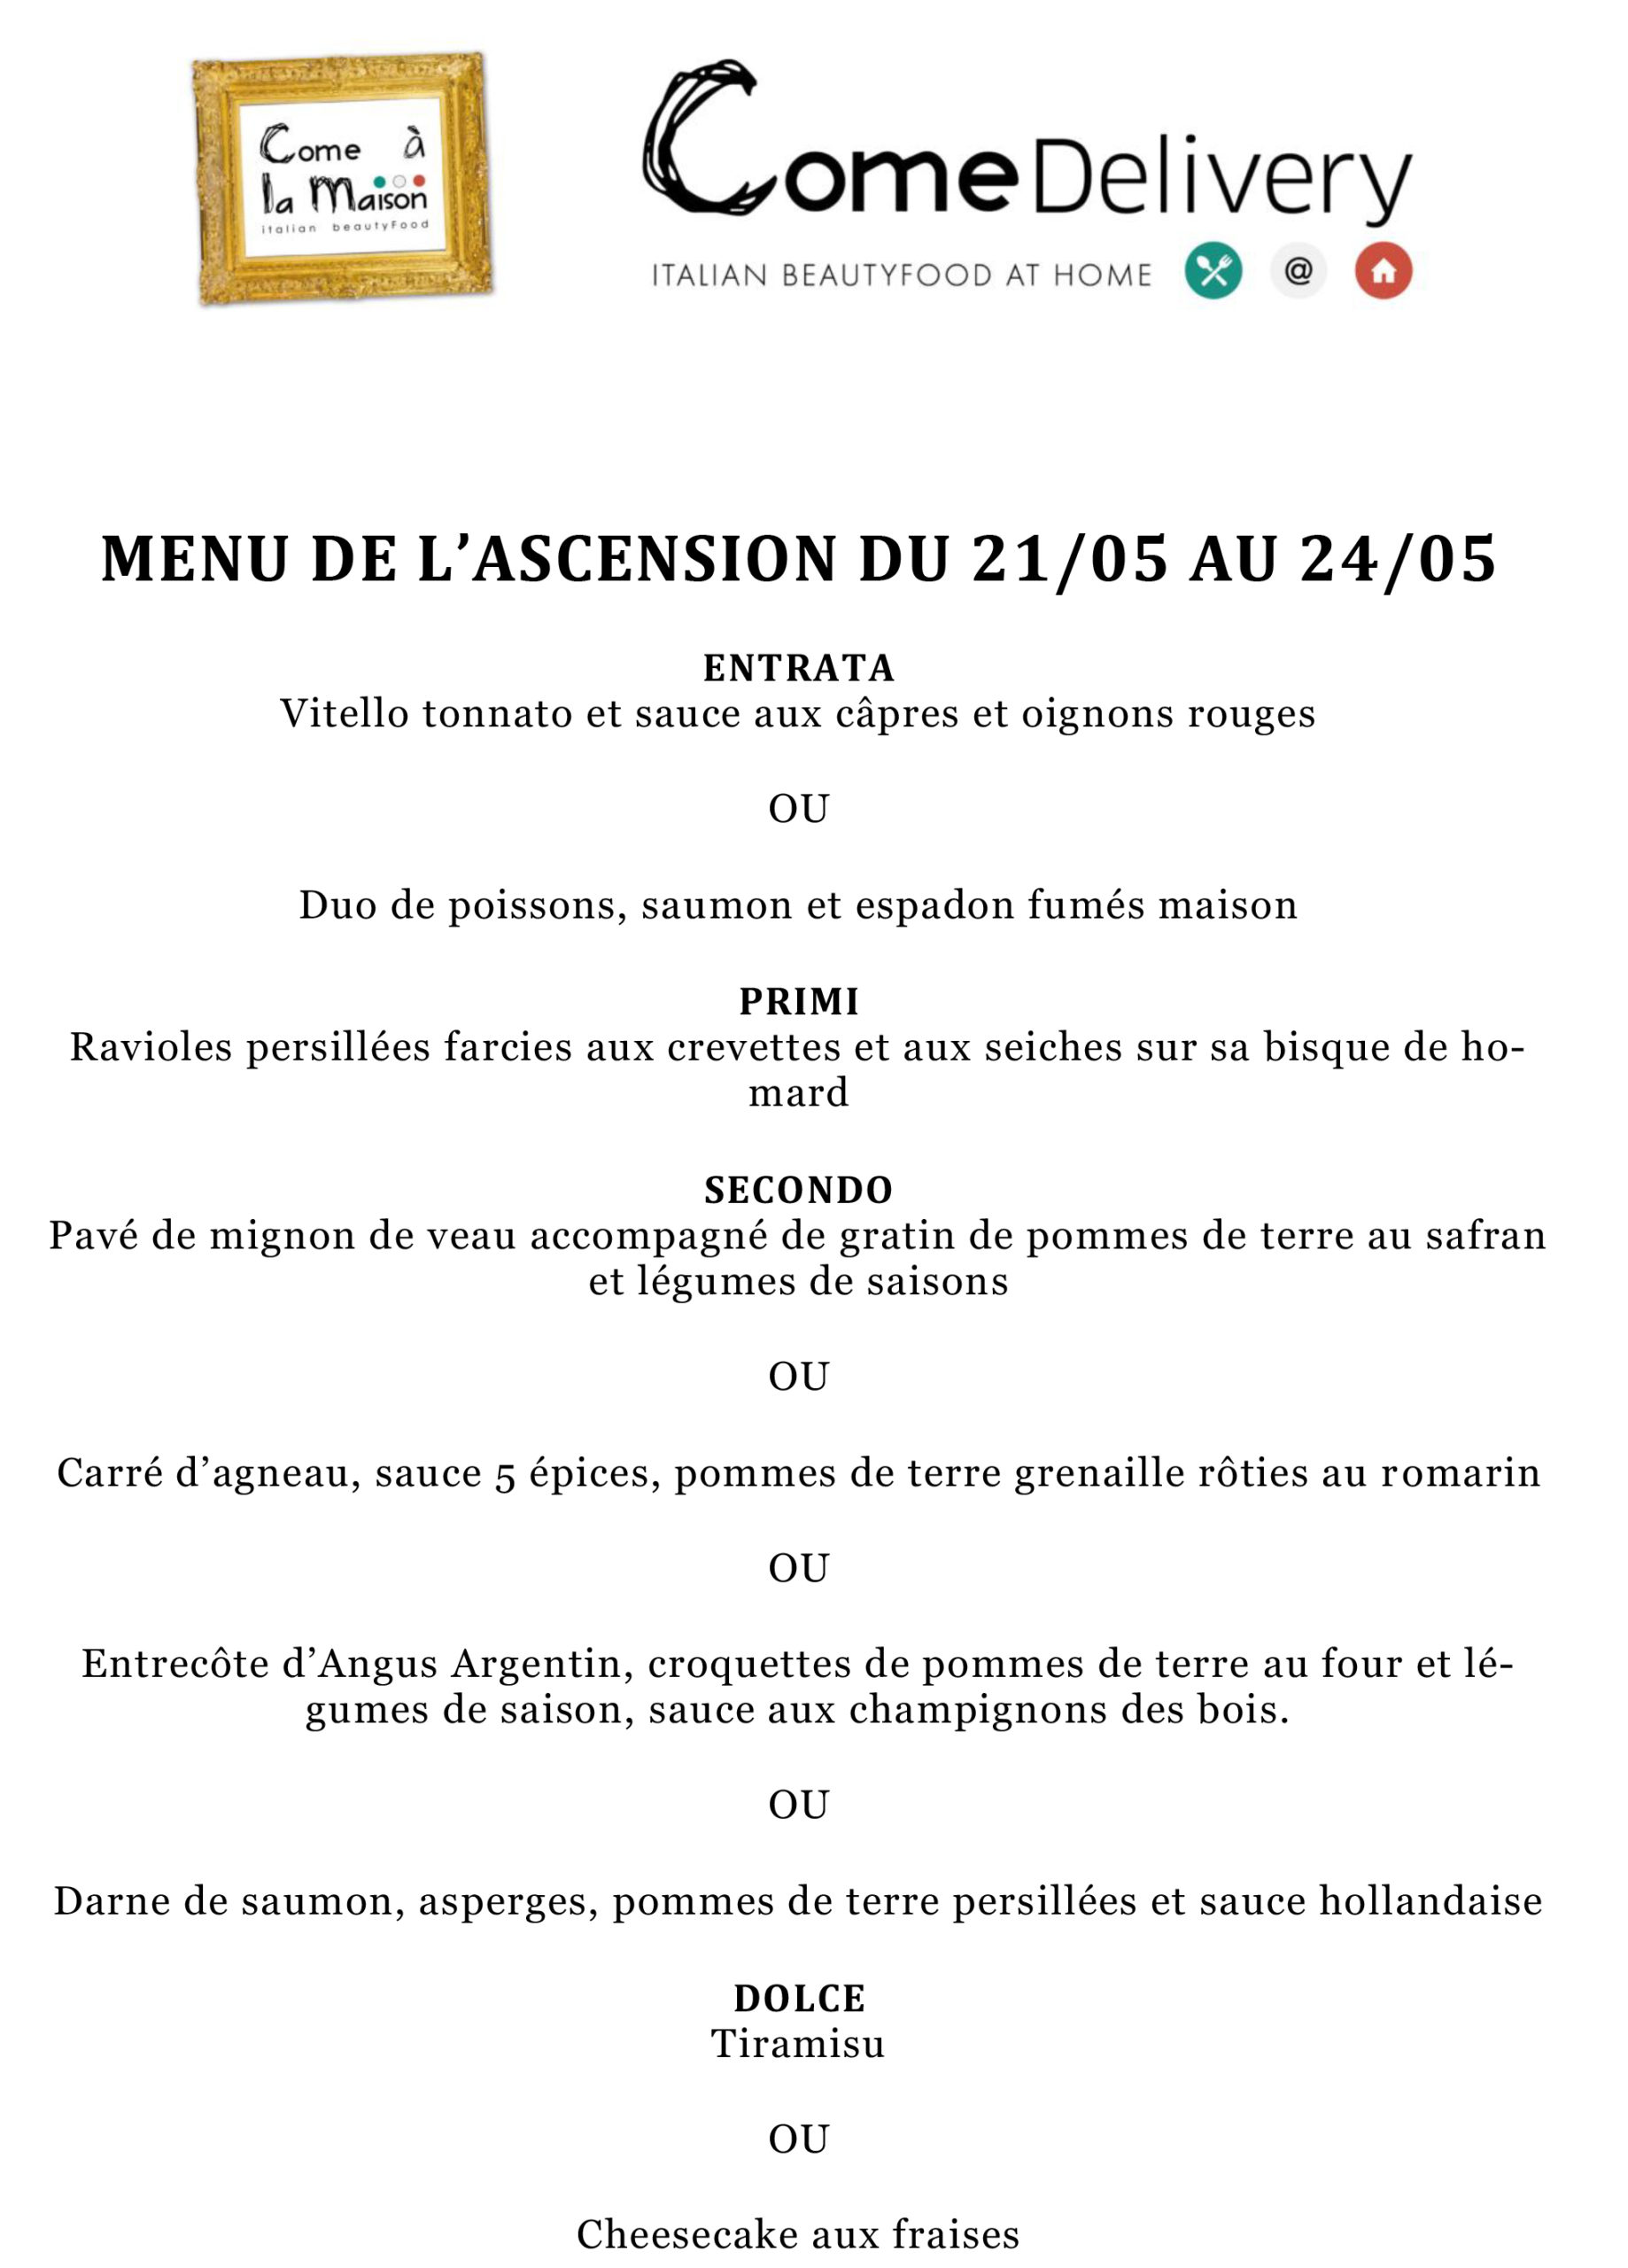 Menu de lascension